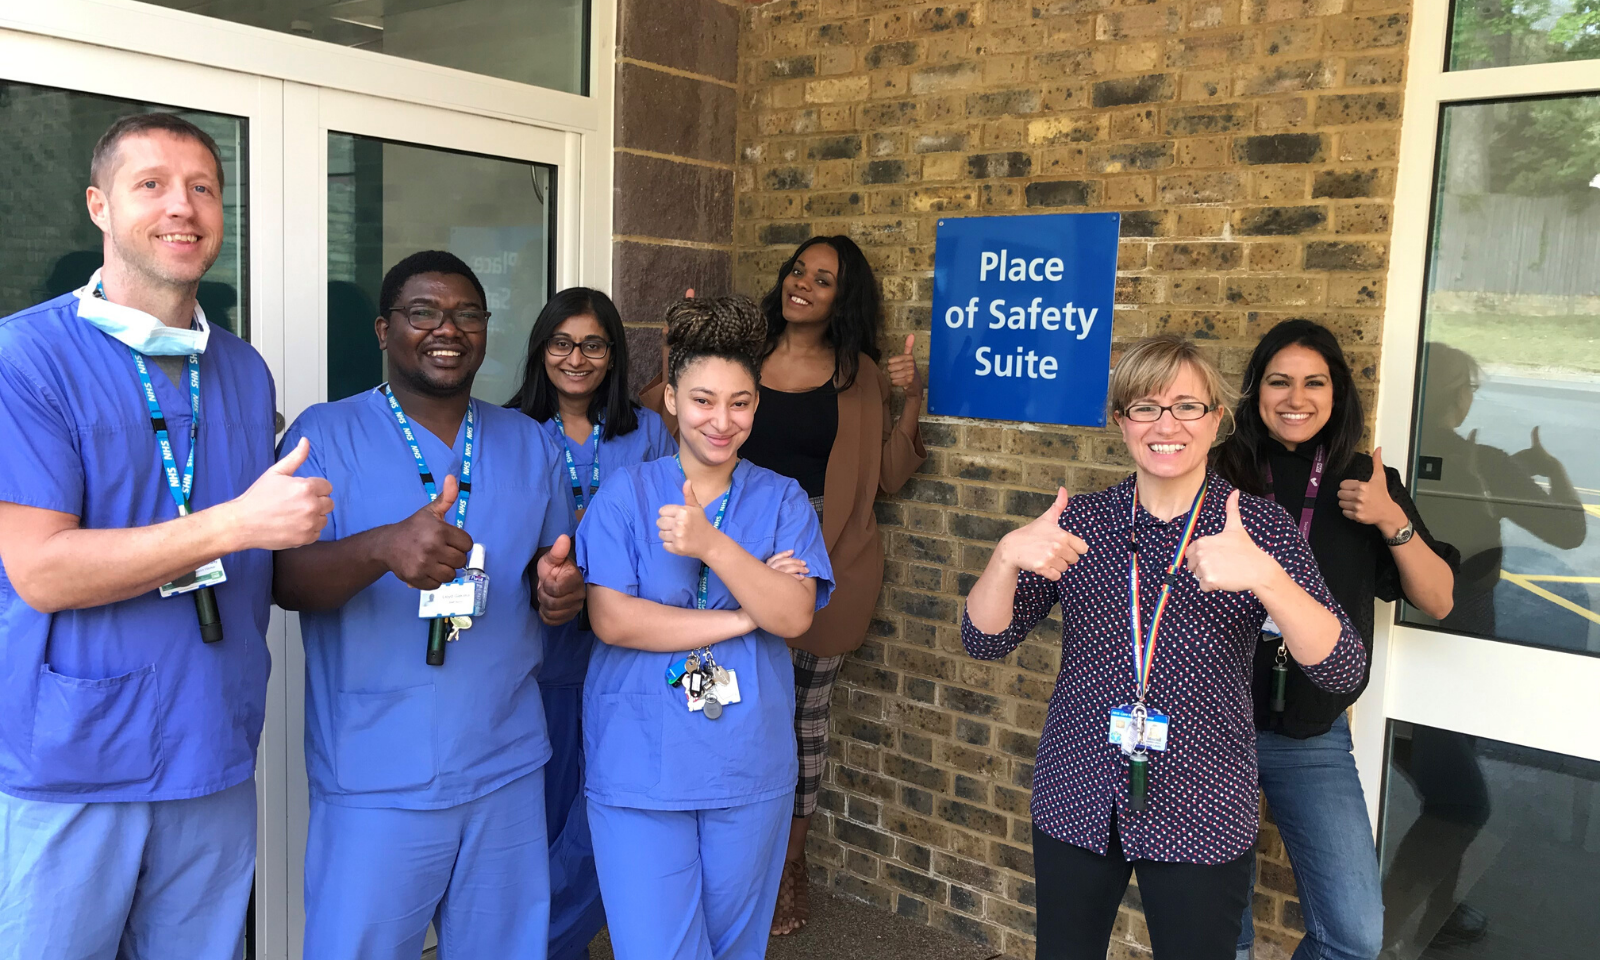 NHS staff standing outside  Place of Safety Suite holding their thumbs up.